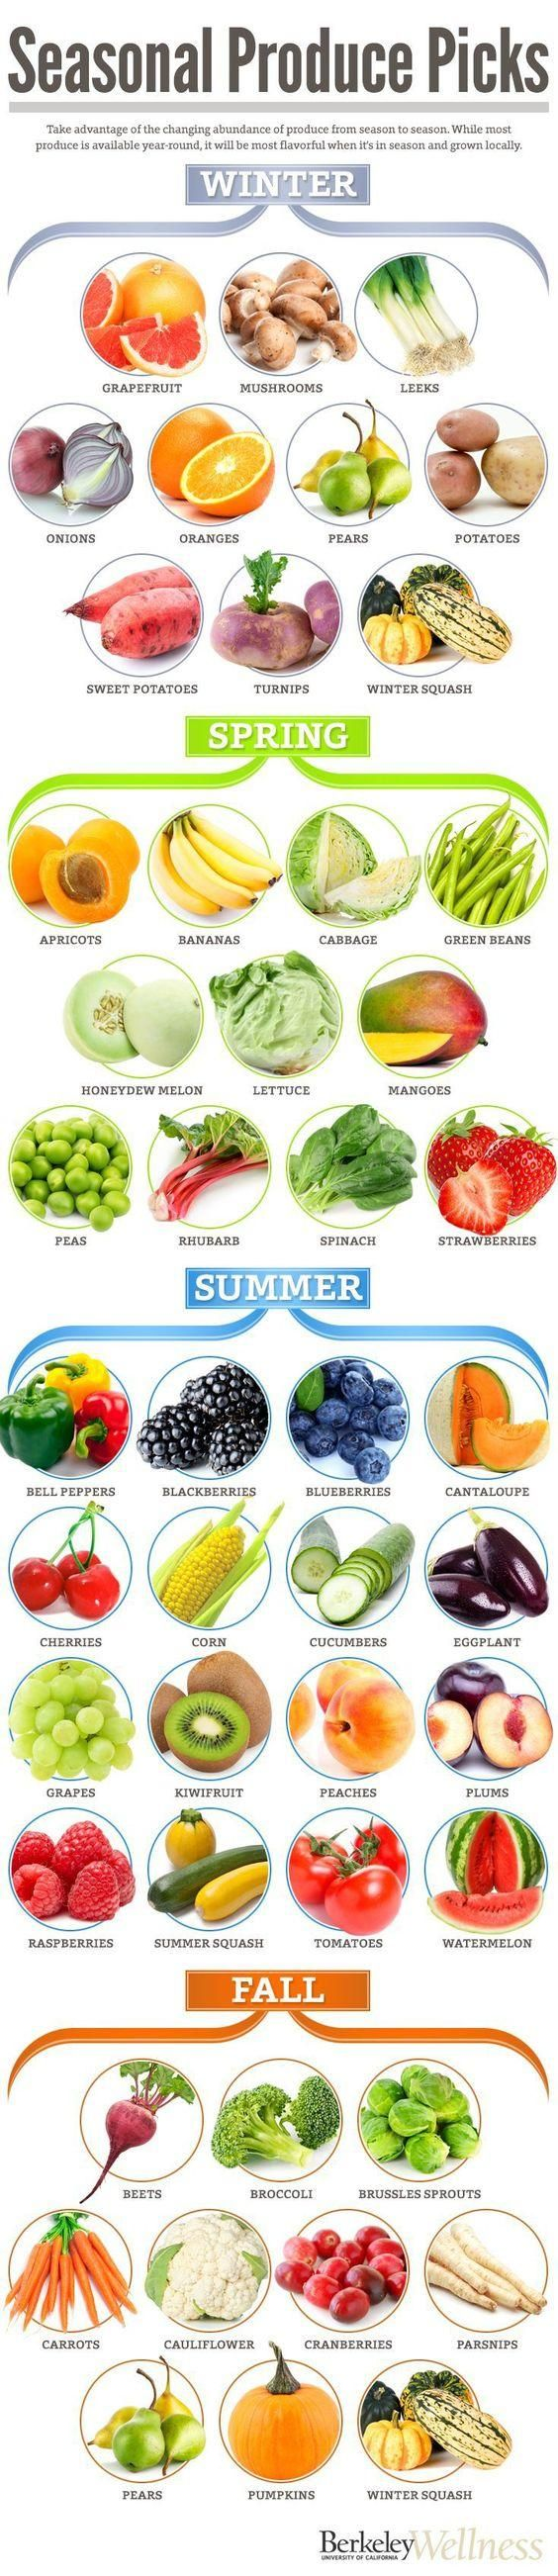 Healthy Diet Plan to Lose Weight http://fastsolut.info/DietPlansToLoseWeight